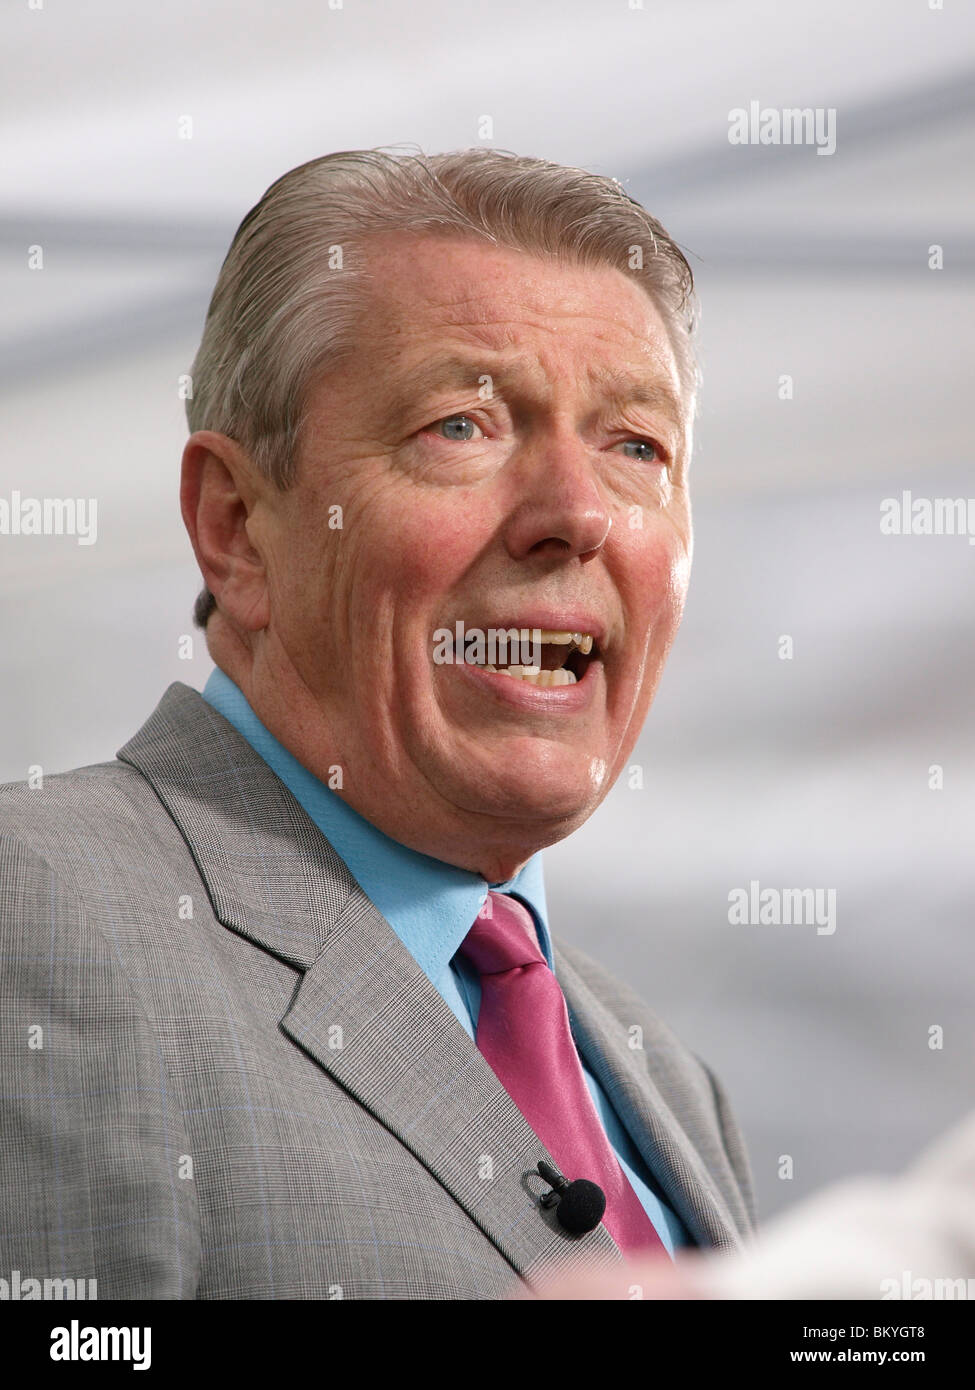 Former Labour Home Secretary Alan Johnson speaking to the media on College Green outside Parliament on 11th May - Stock Image